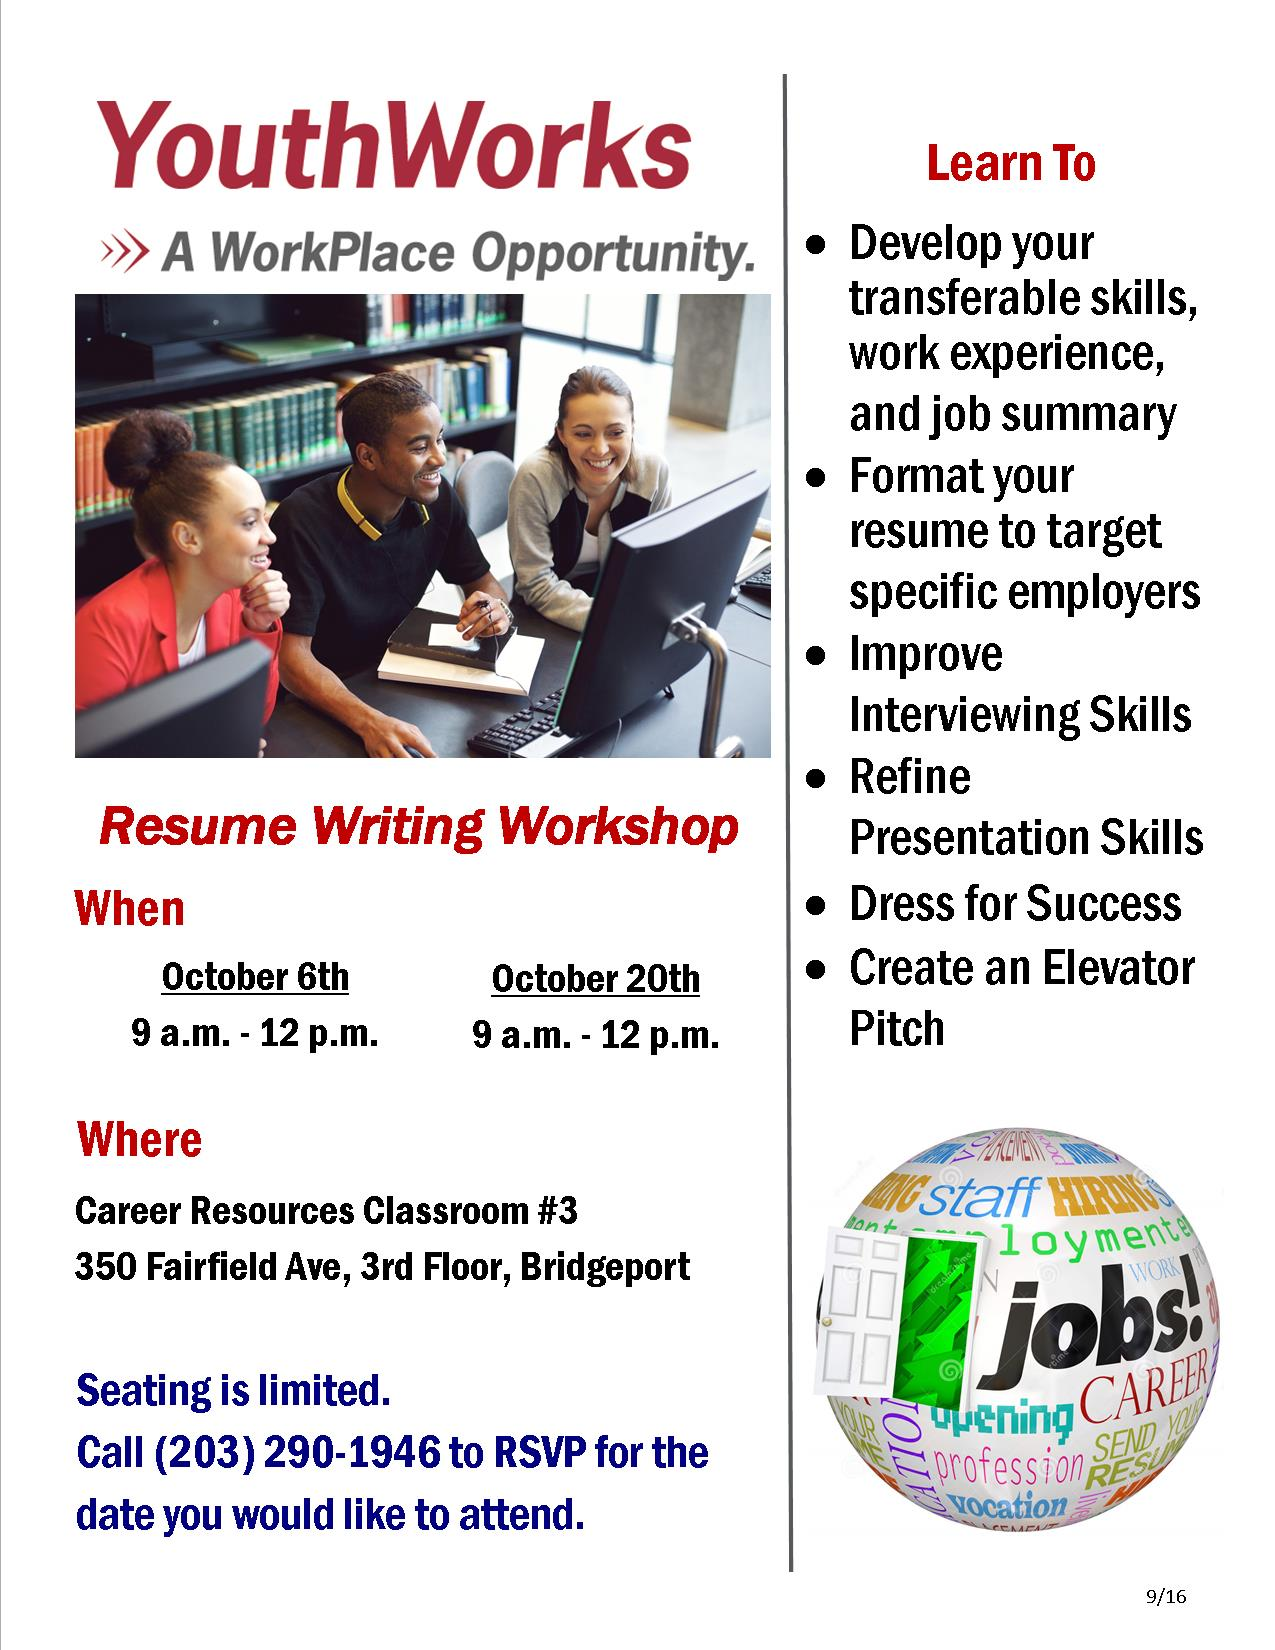 youthworks resume writing workshop the workplace free workshops nyc youth bachelor of Resume Free Resume Workshops Nyc